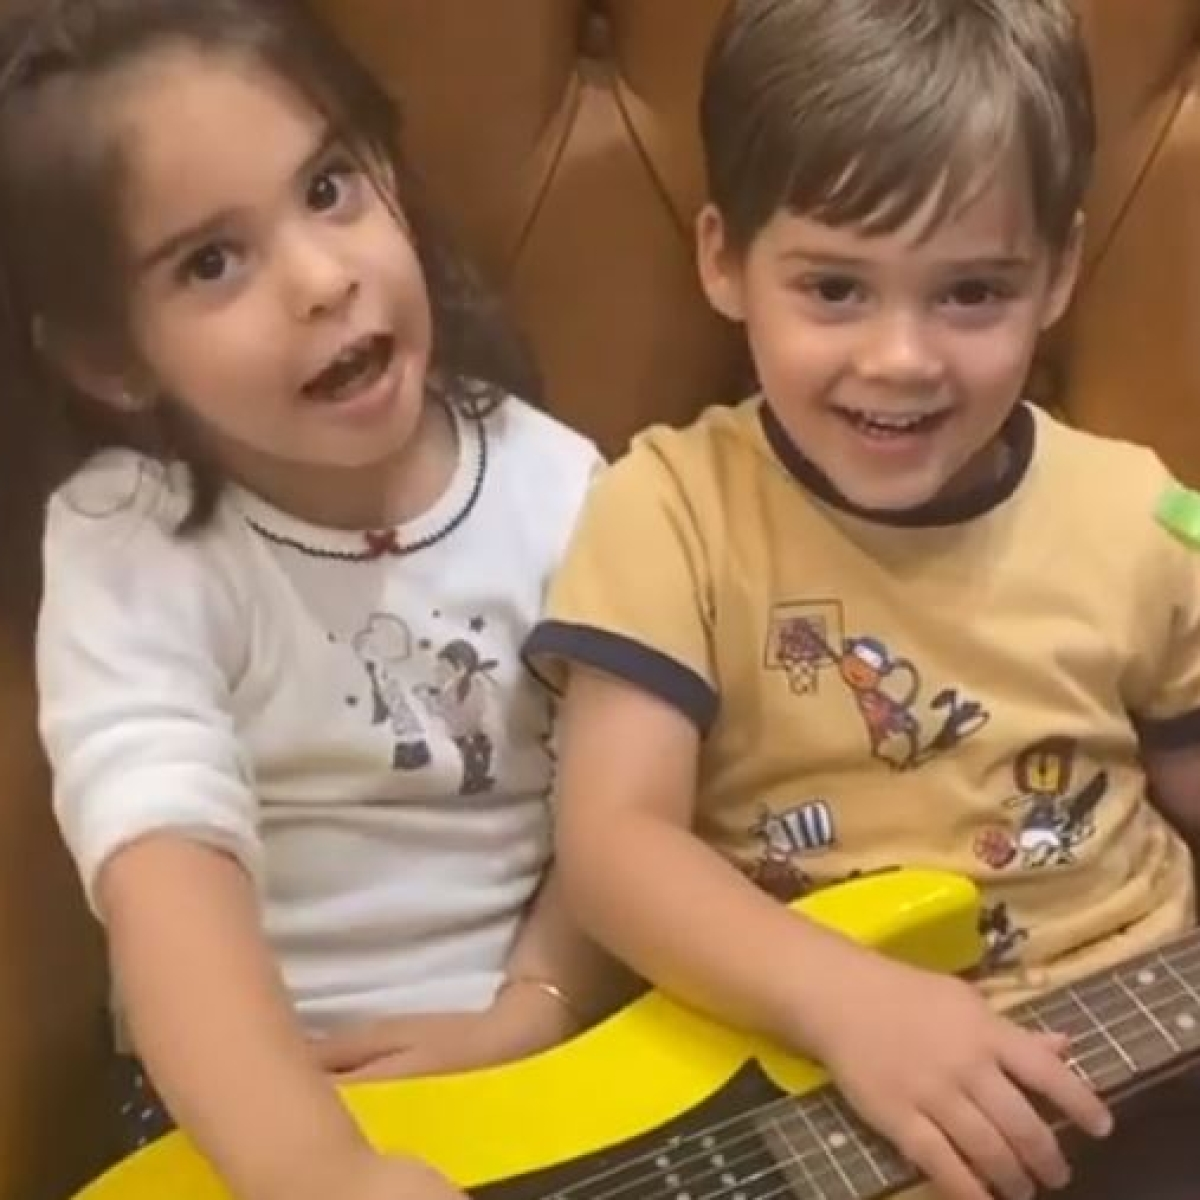 Watch: Karan Johar shares video of his twins Yash and Roohi singing, says it's not in their genes